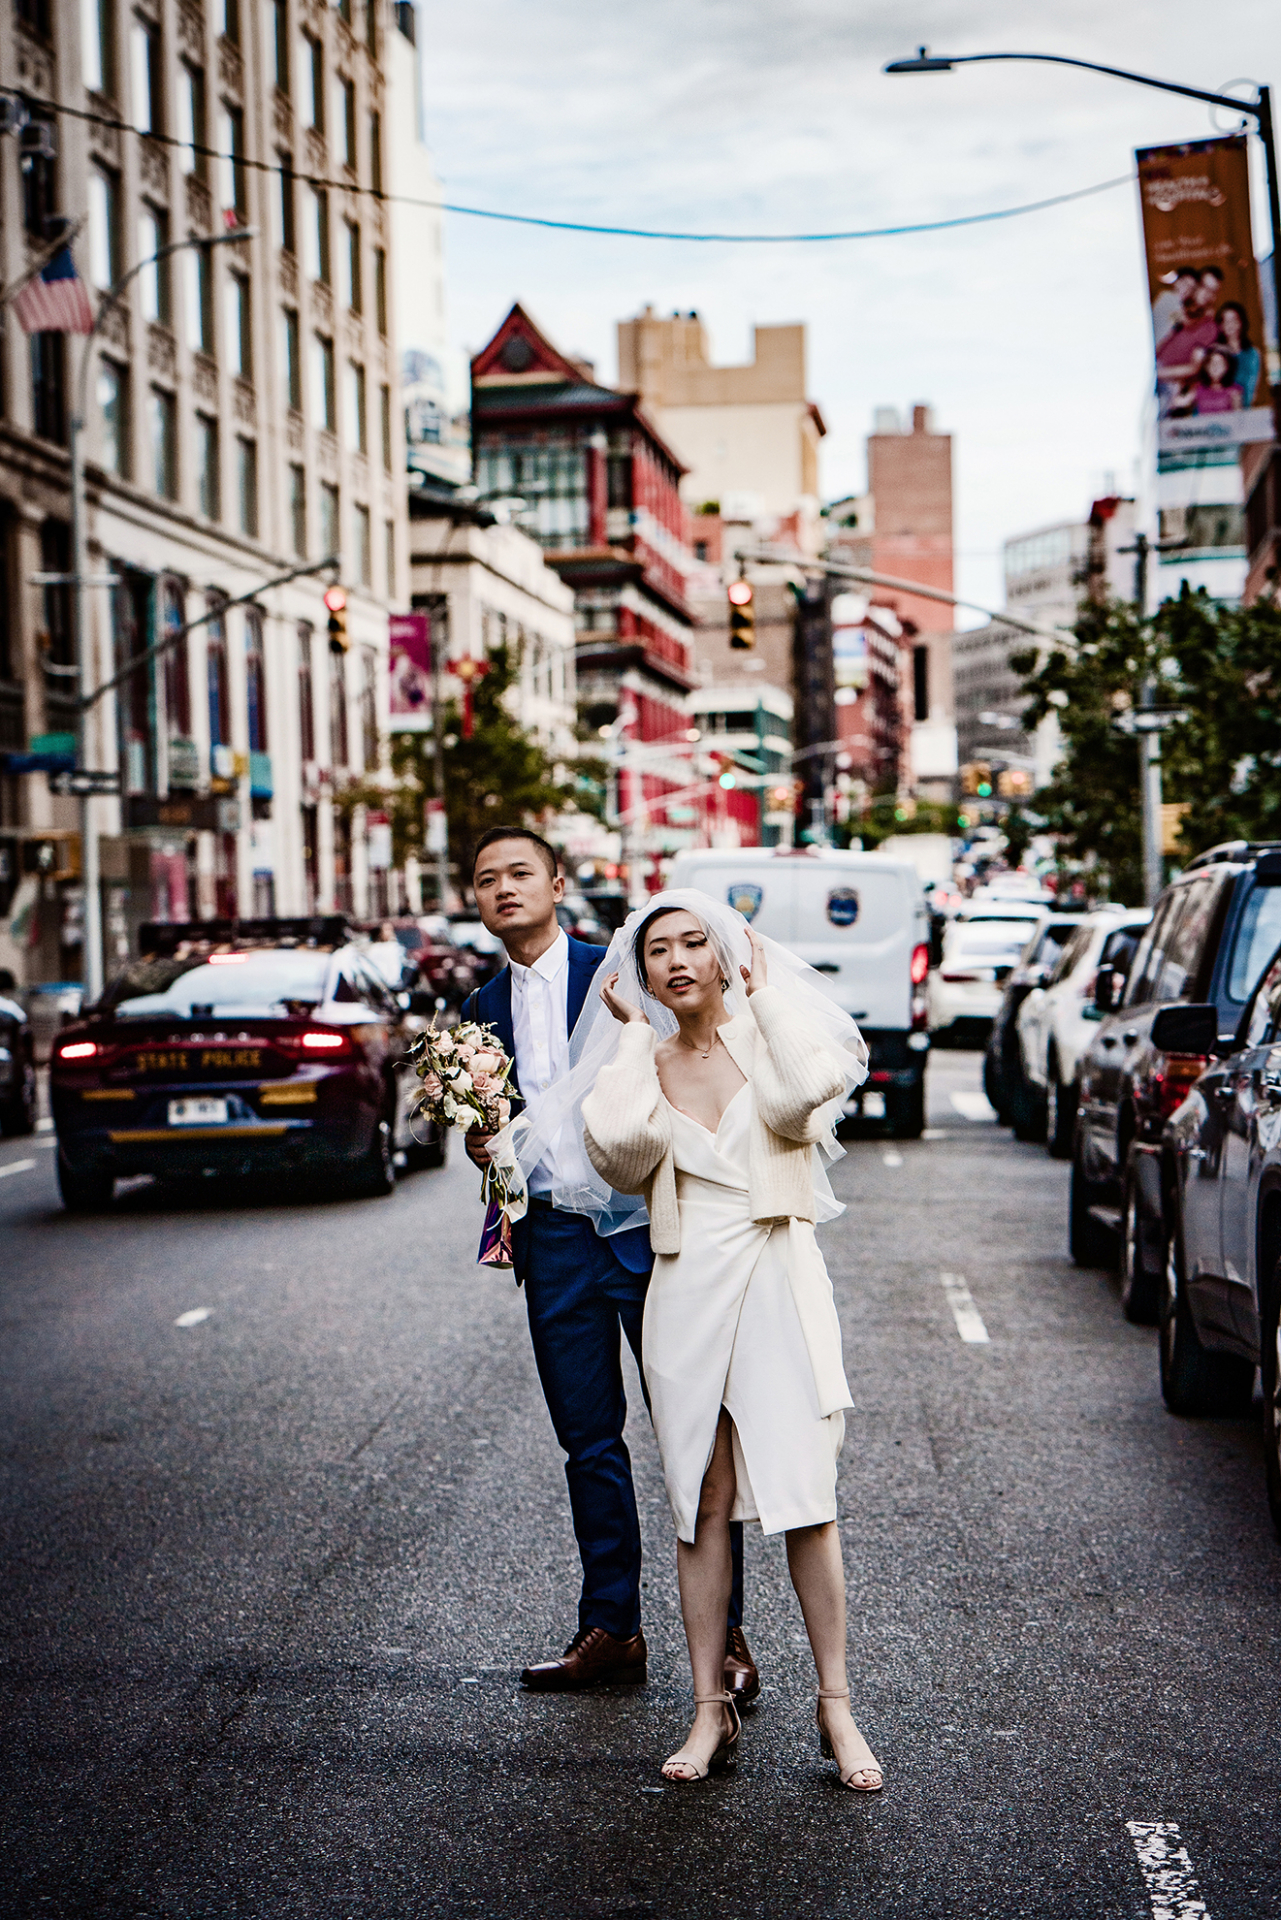 NYC Wedding Elopement Couple - Urban Street Image | The bride and groom are rushing off into the busy New York streets